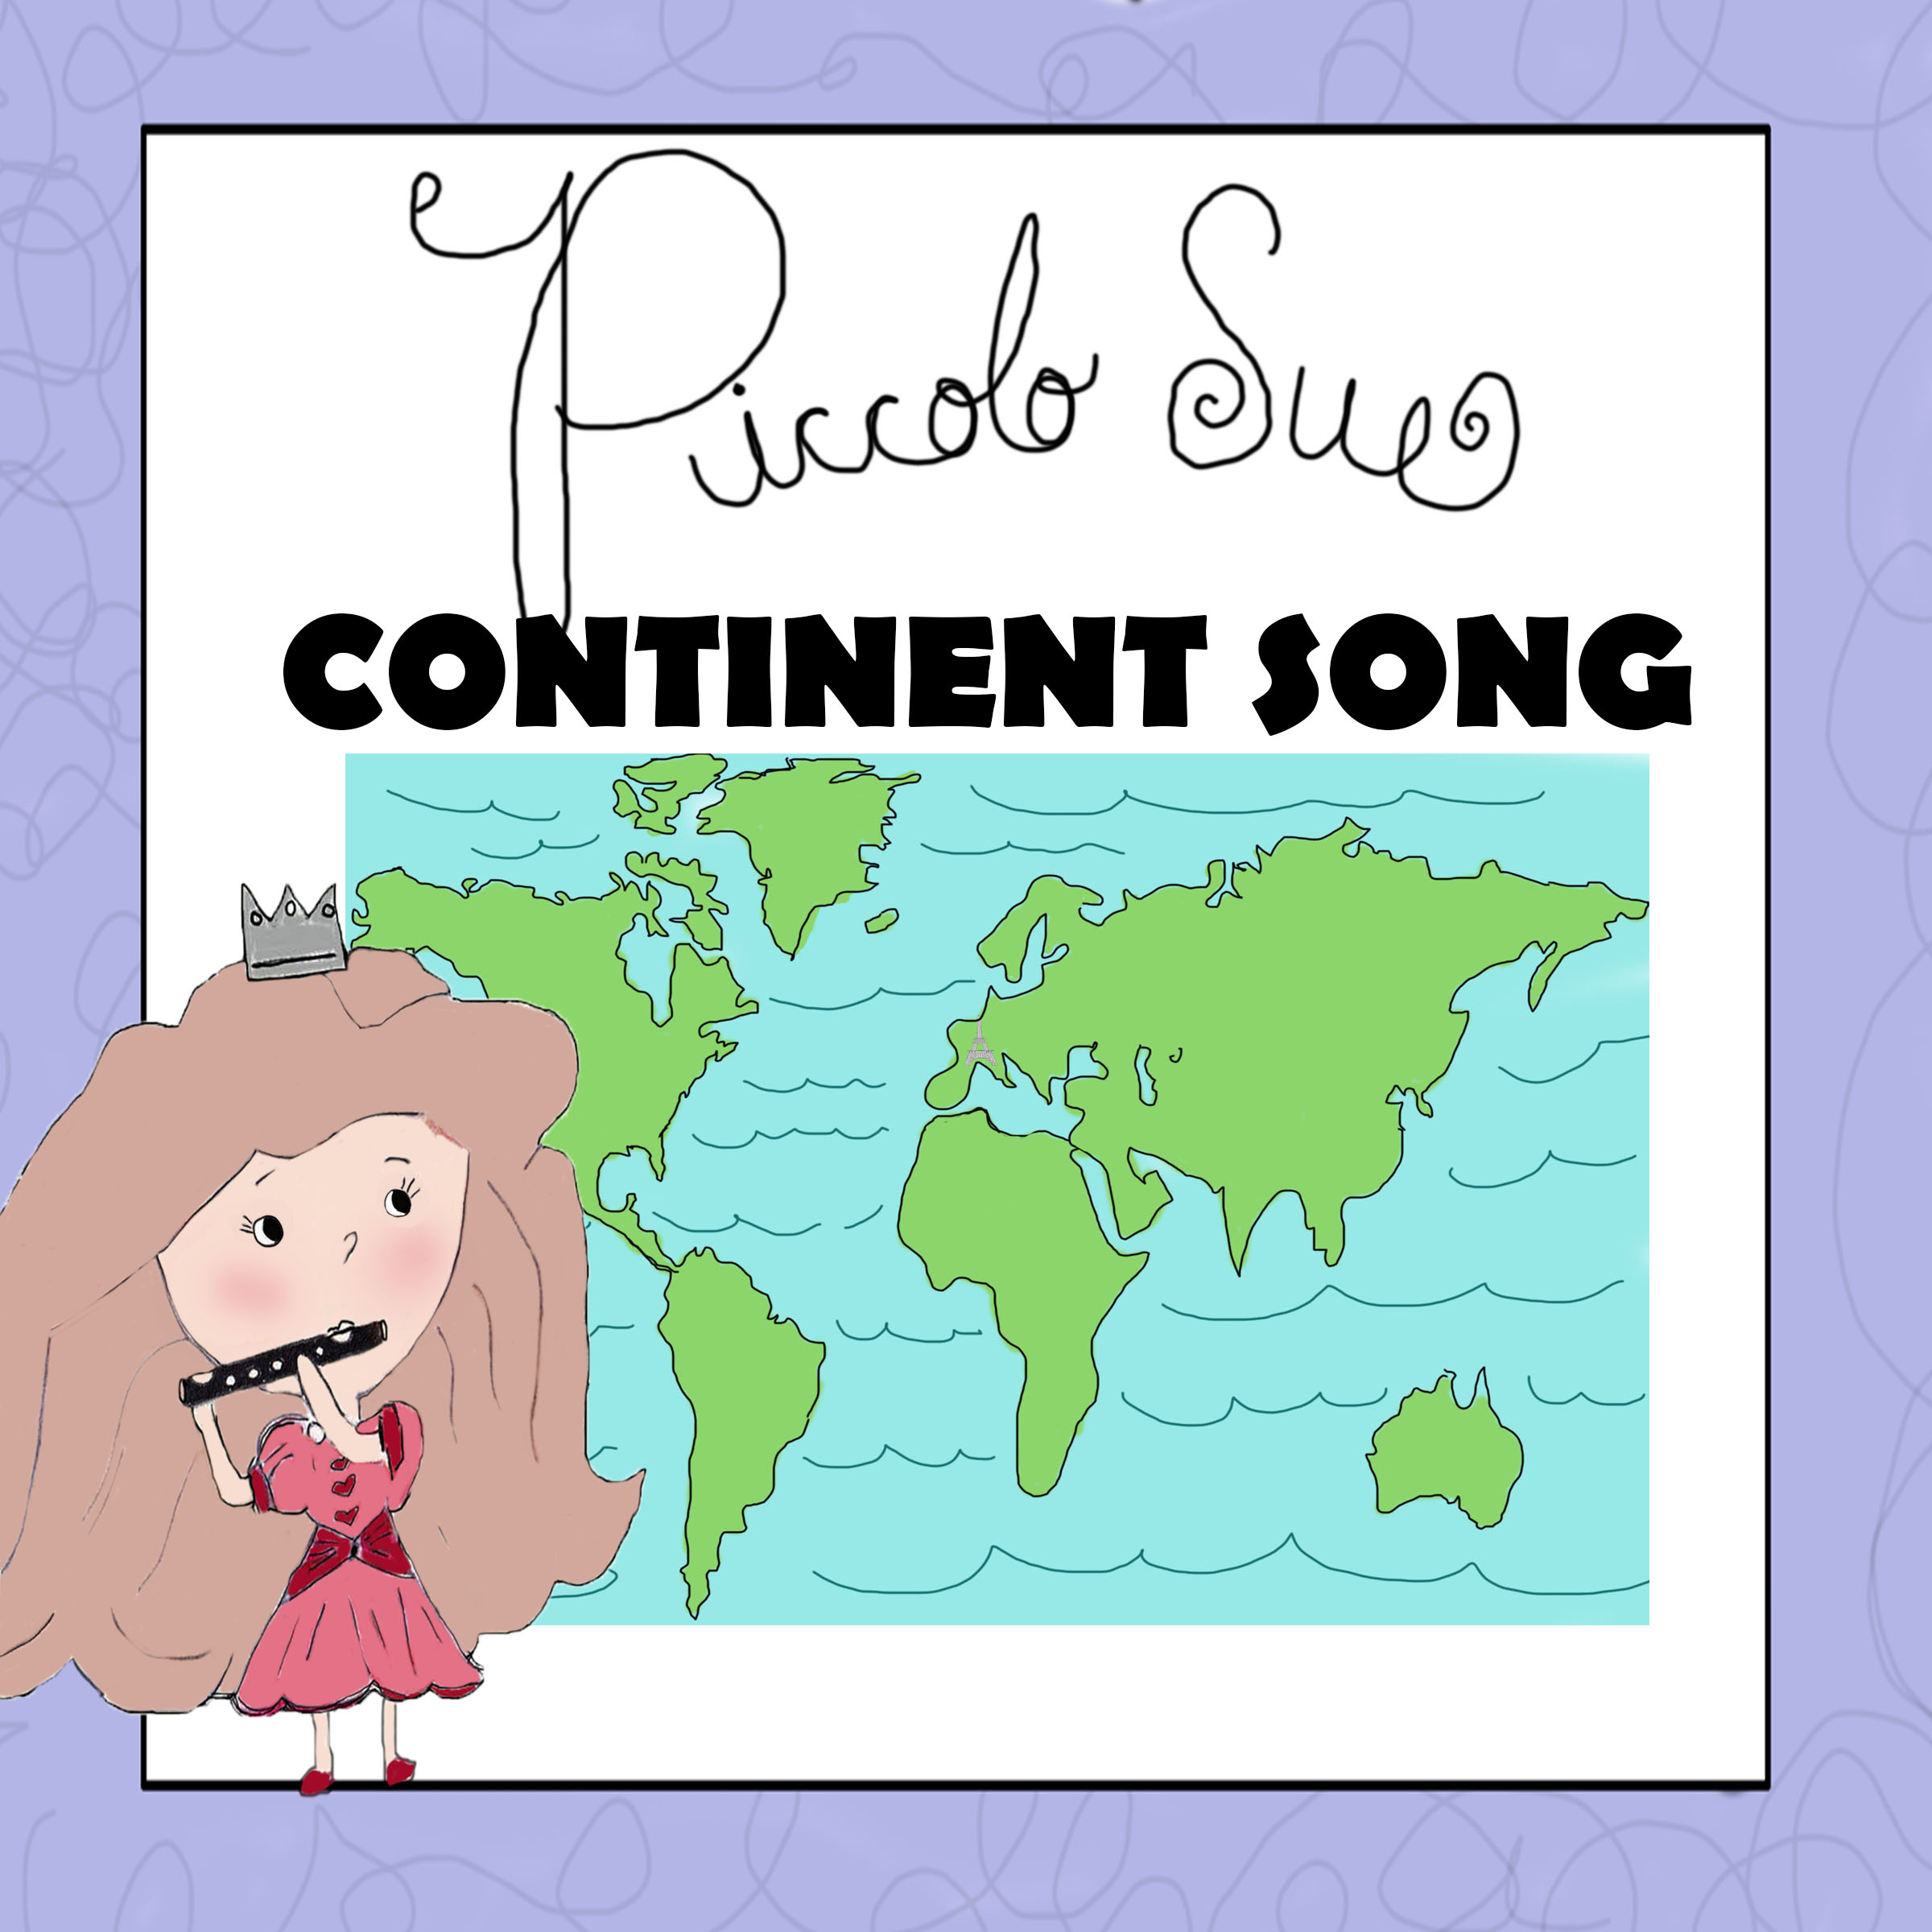 Song VIDEO: Continent Song